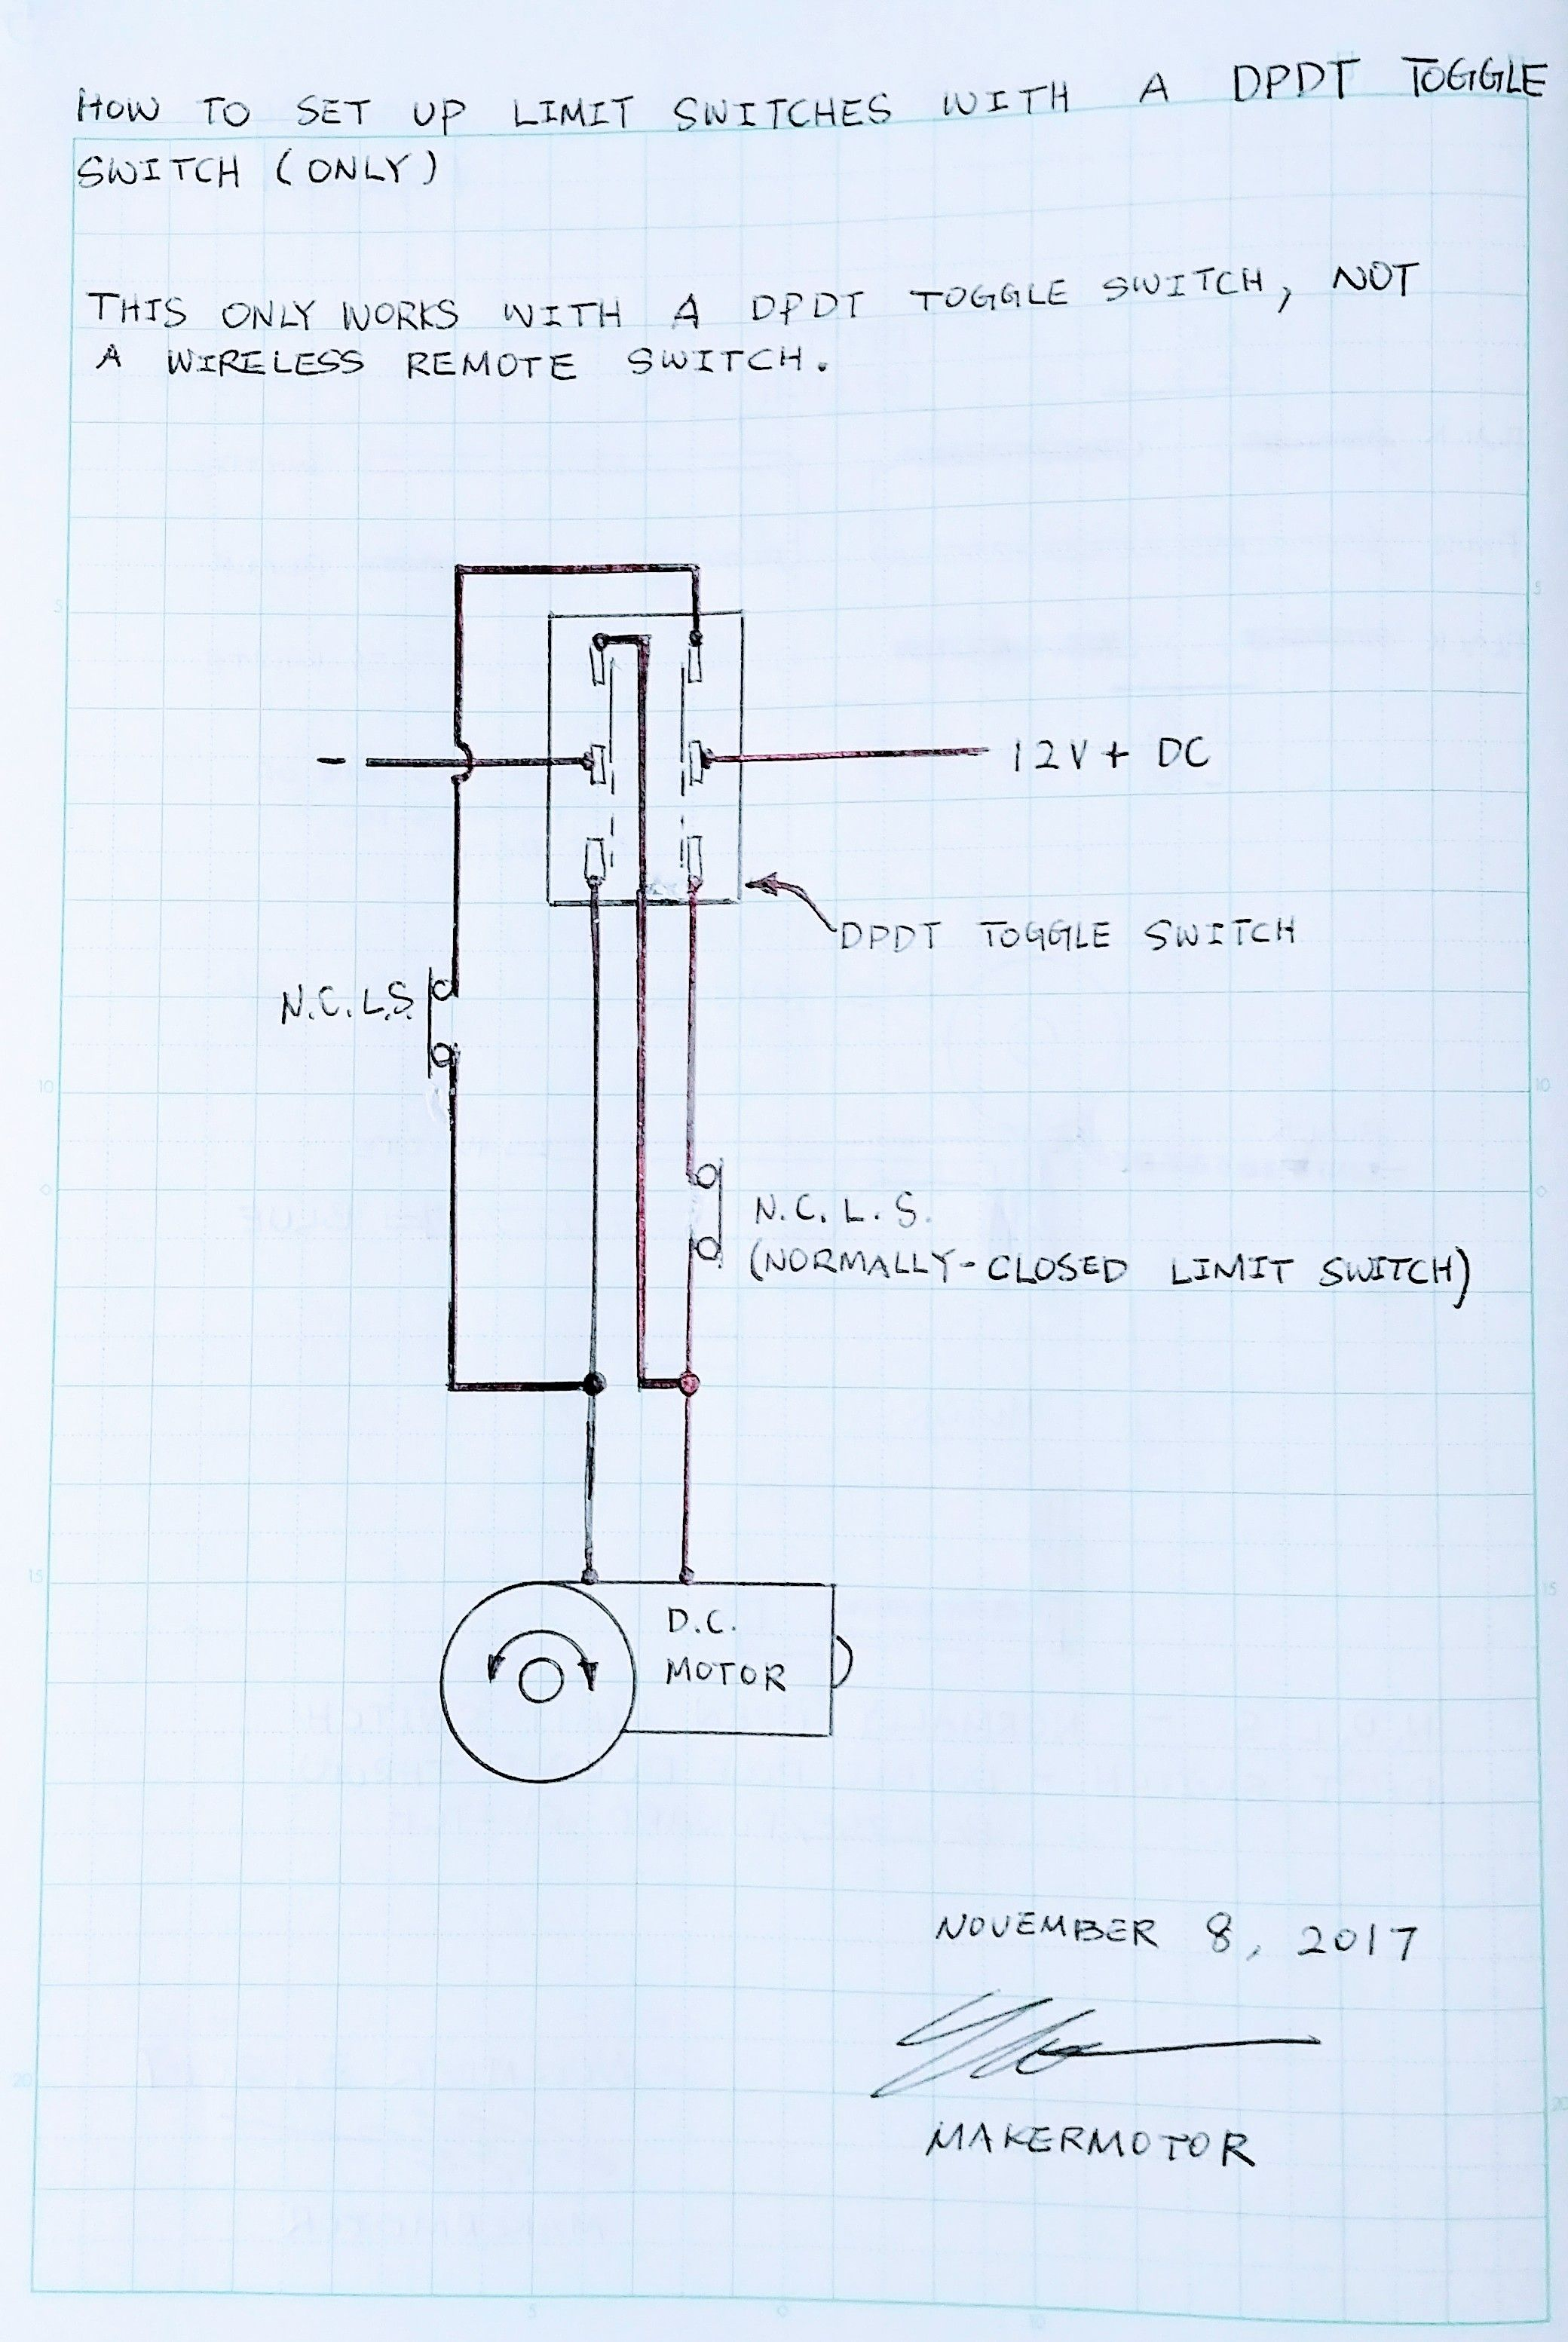 medium resolution of how to set up limit switches with a wired dpdt switch for reverse forward controls